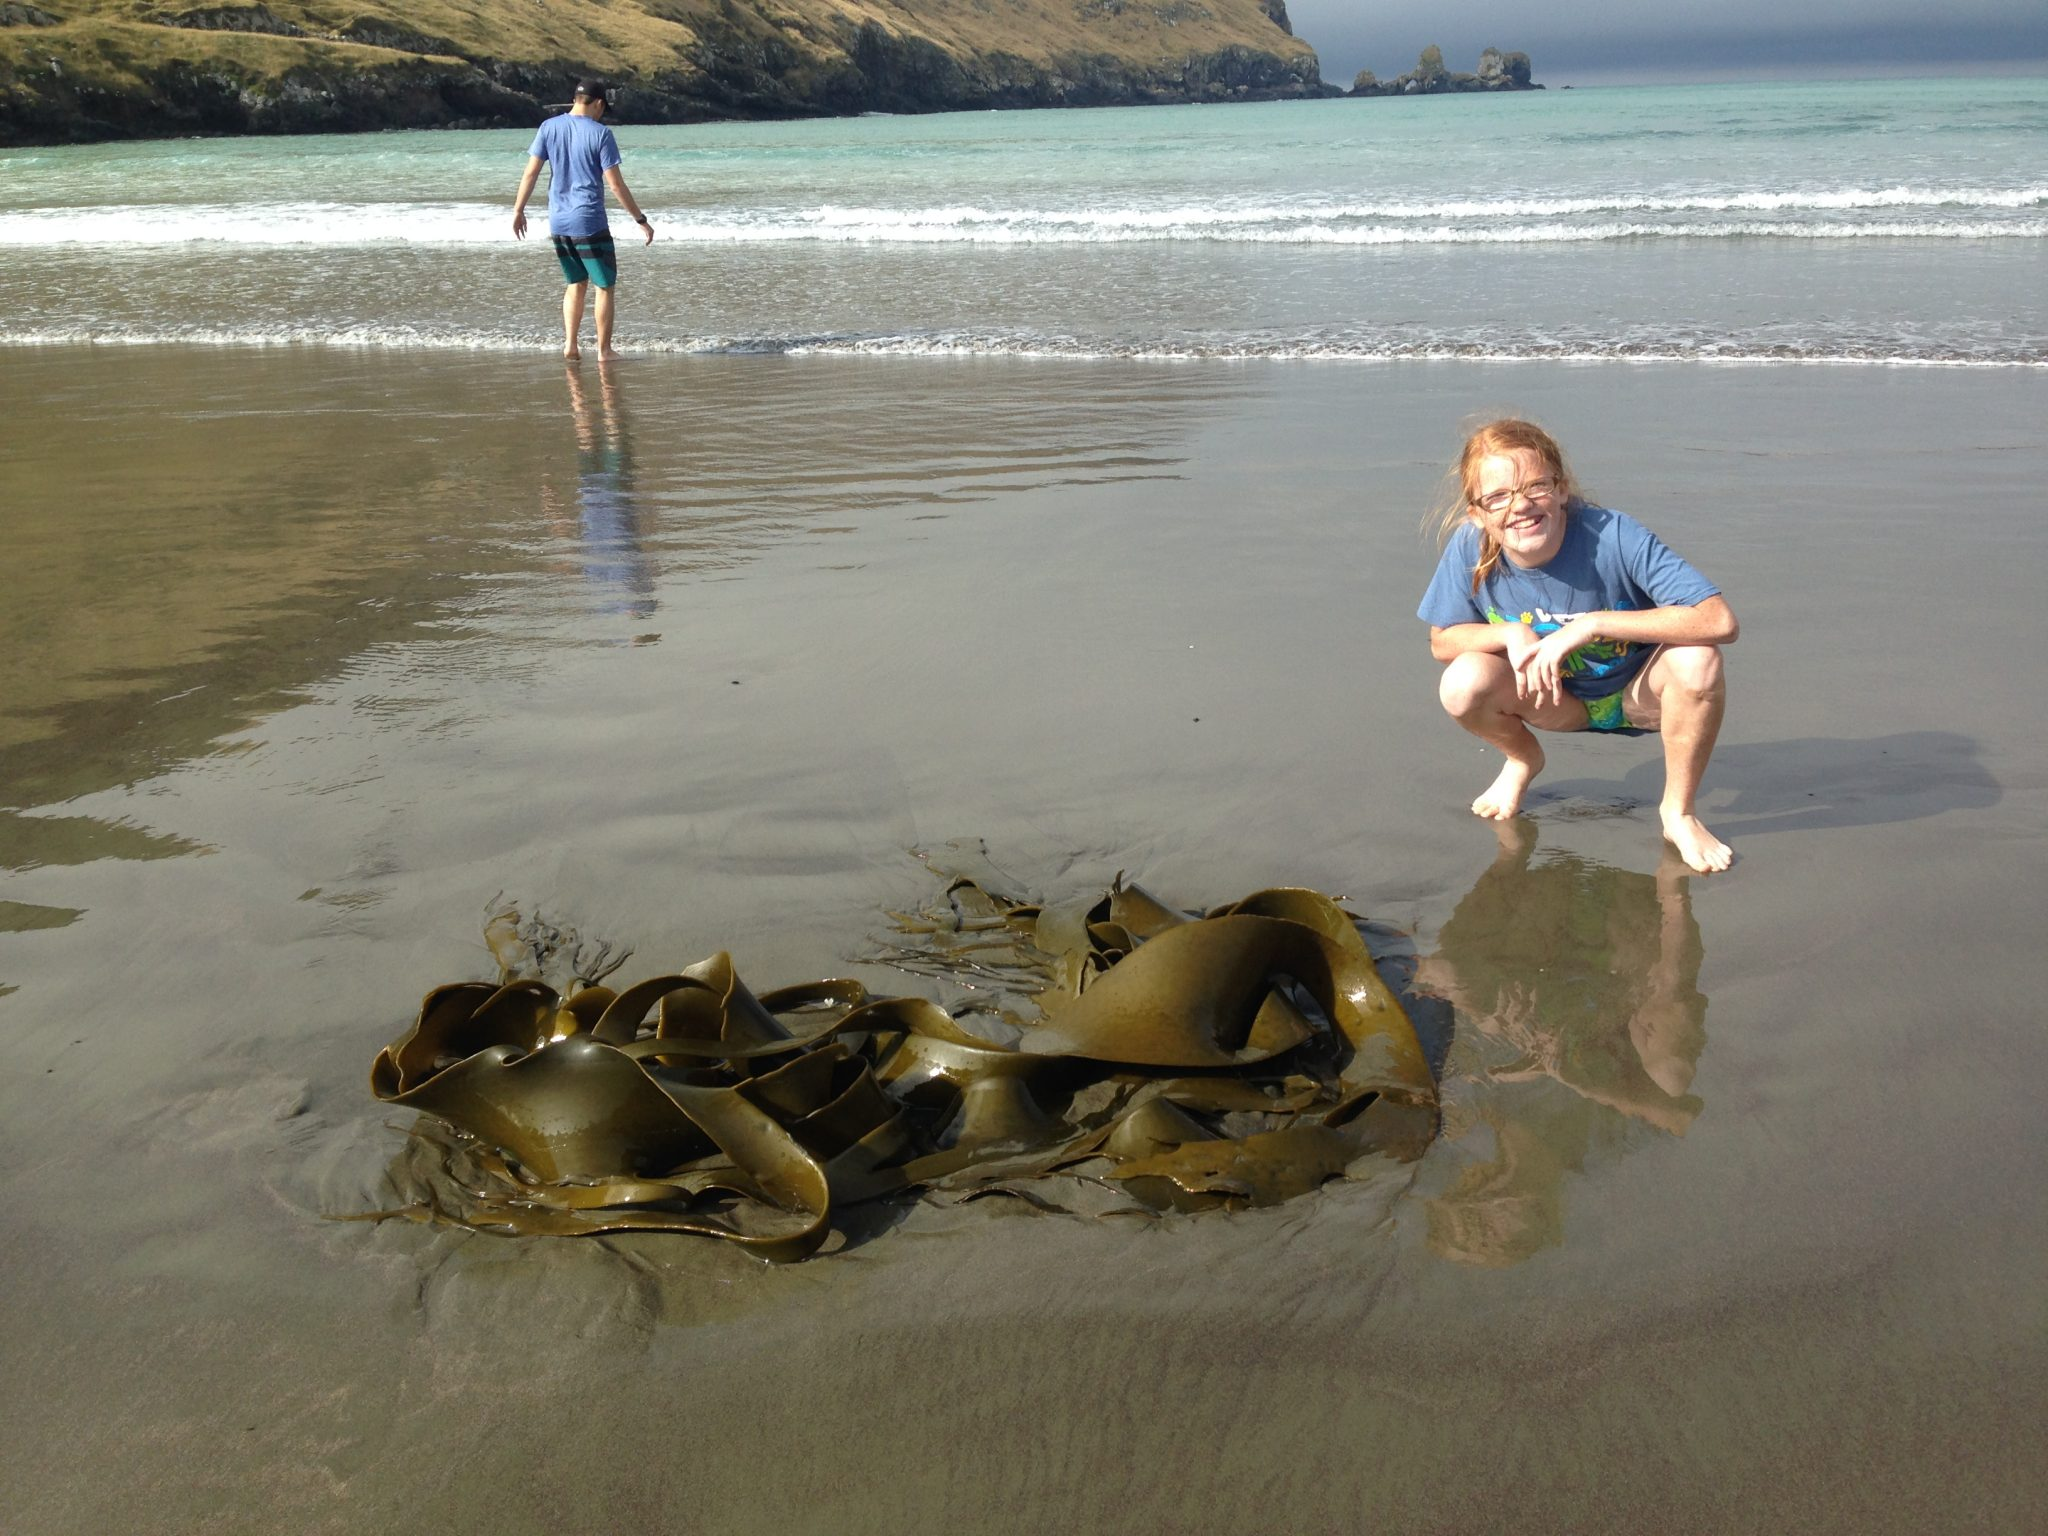 The seaweed grows large off of the coast of New Zealand. This is Ella by some that has washed ashore in Lavericks Bay, Banks Peninsula, New Zealand.